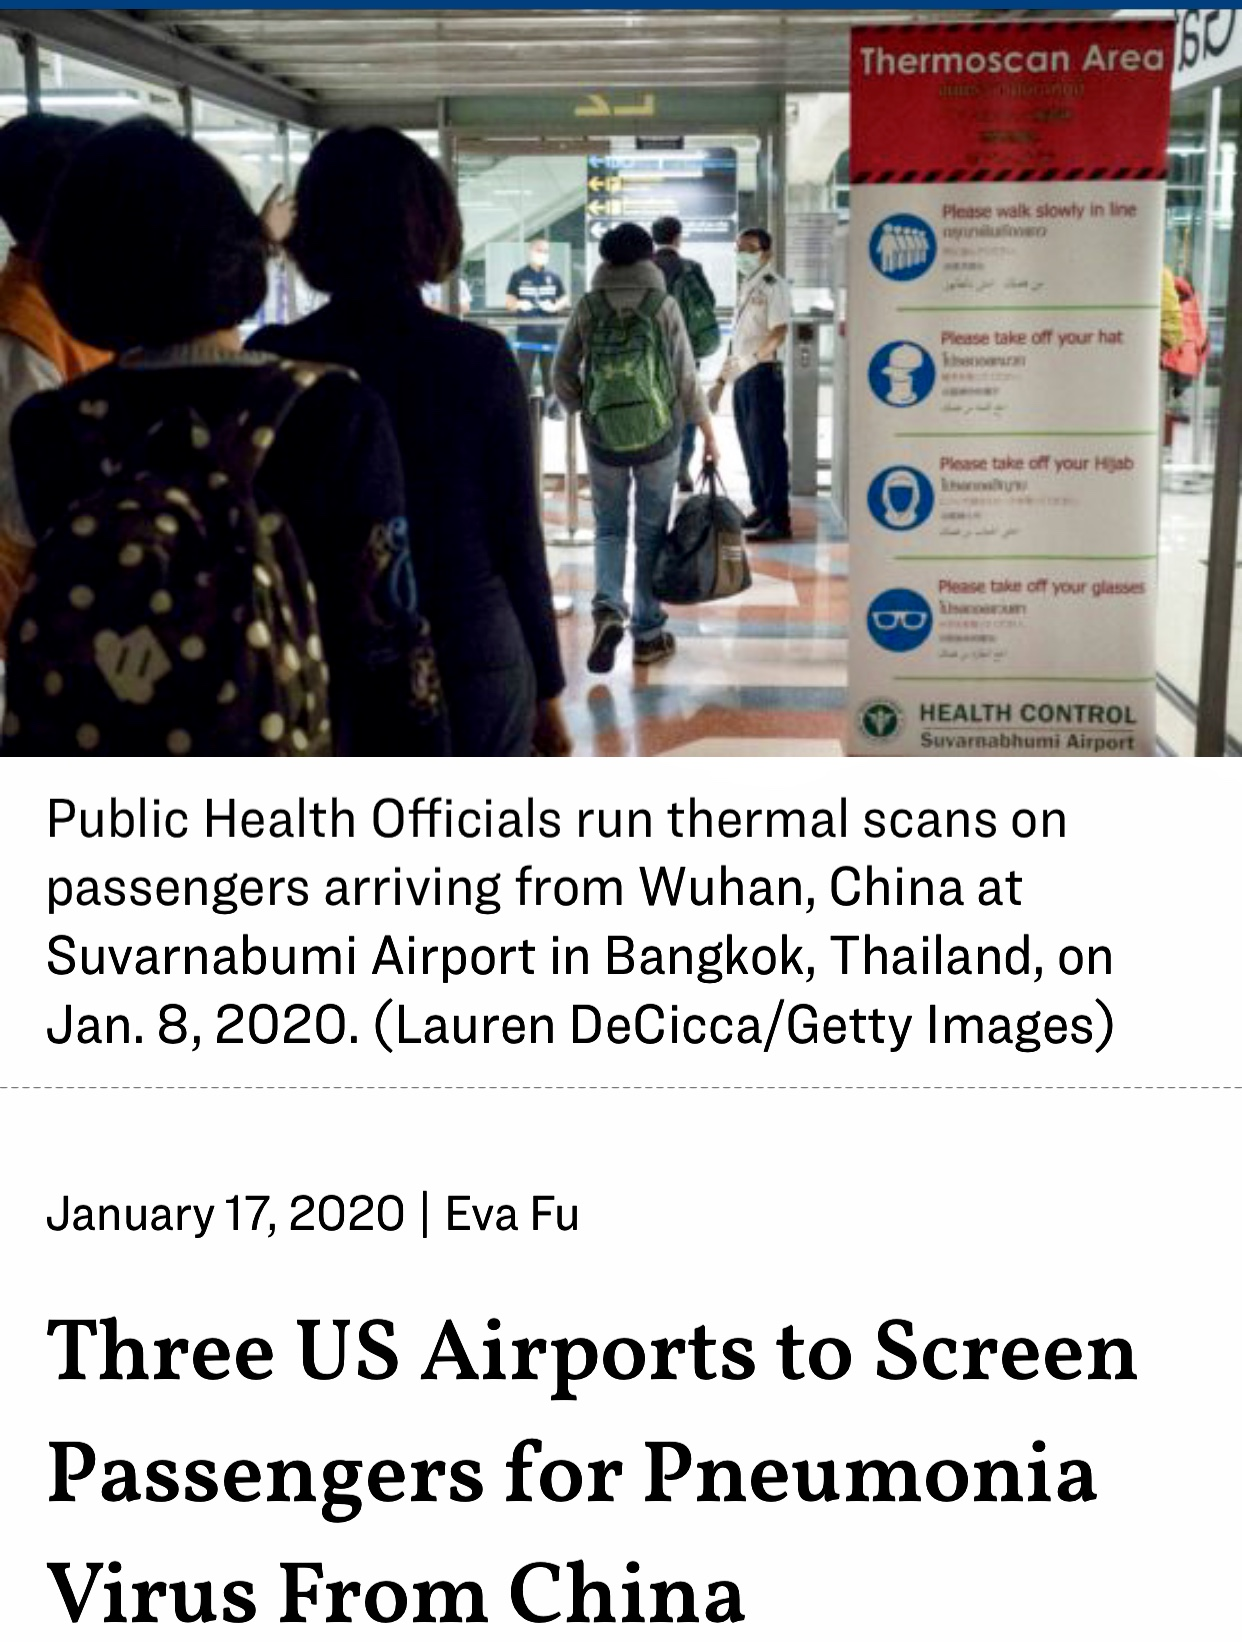 Three US Airports Screen Passengers for Coronavirus From China